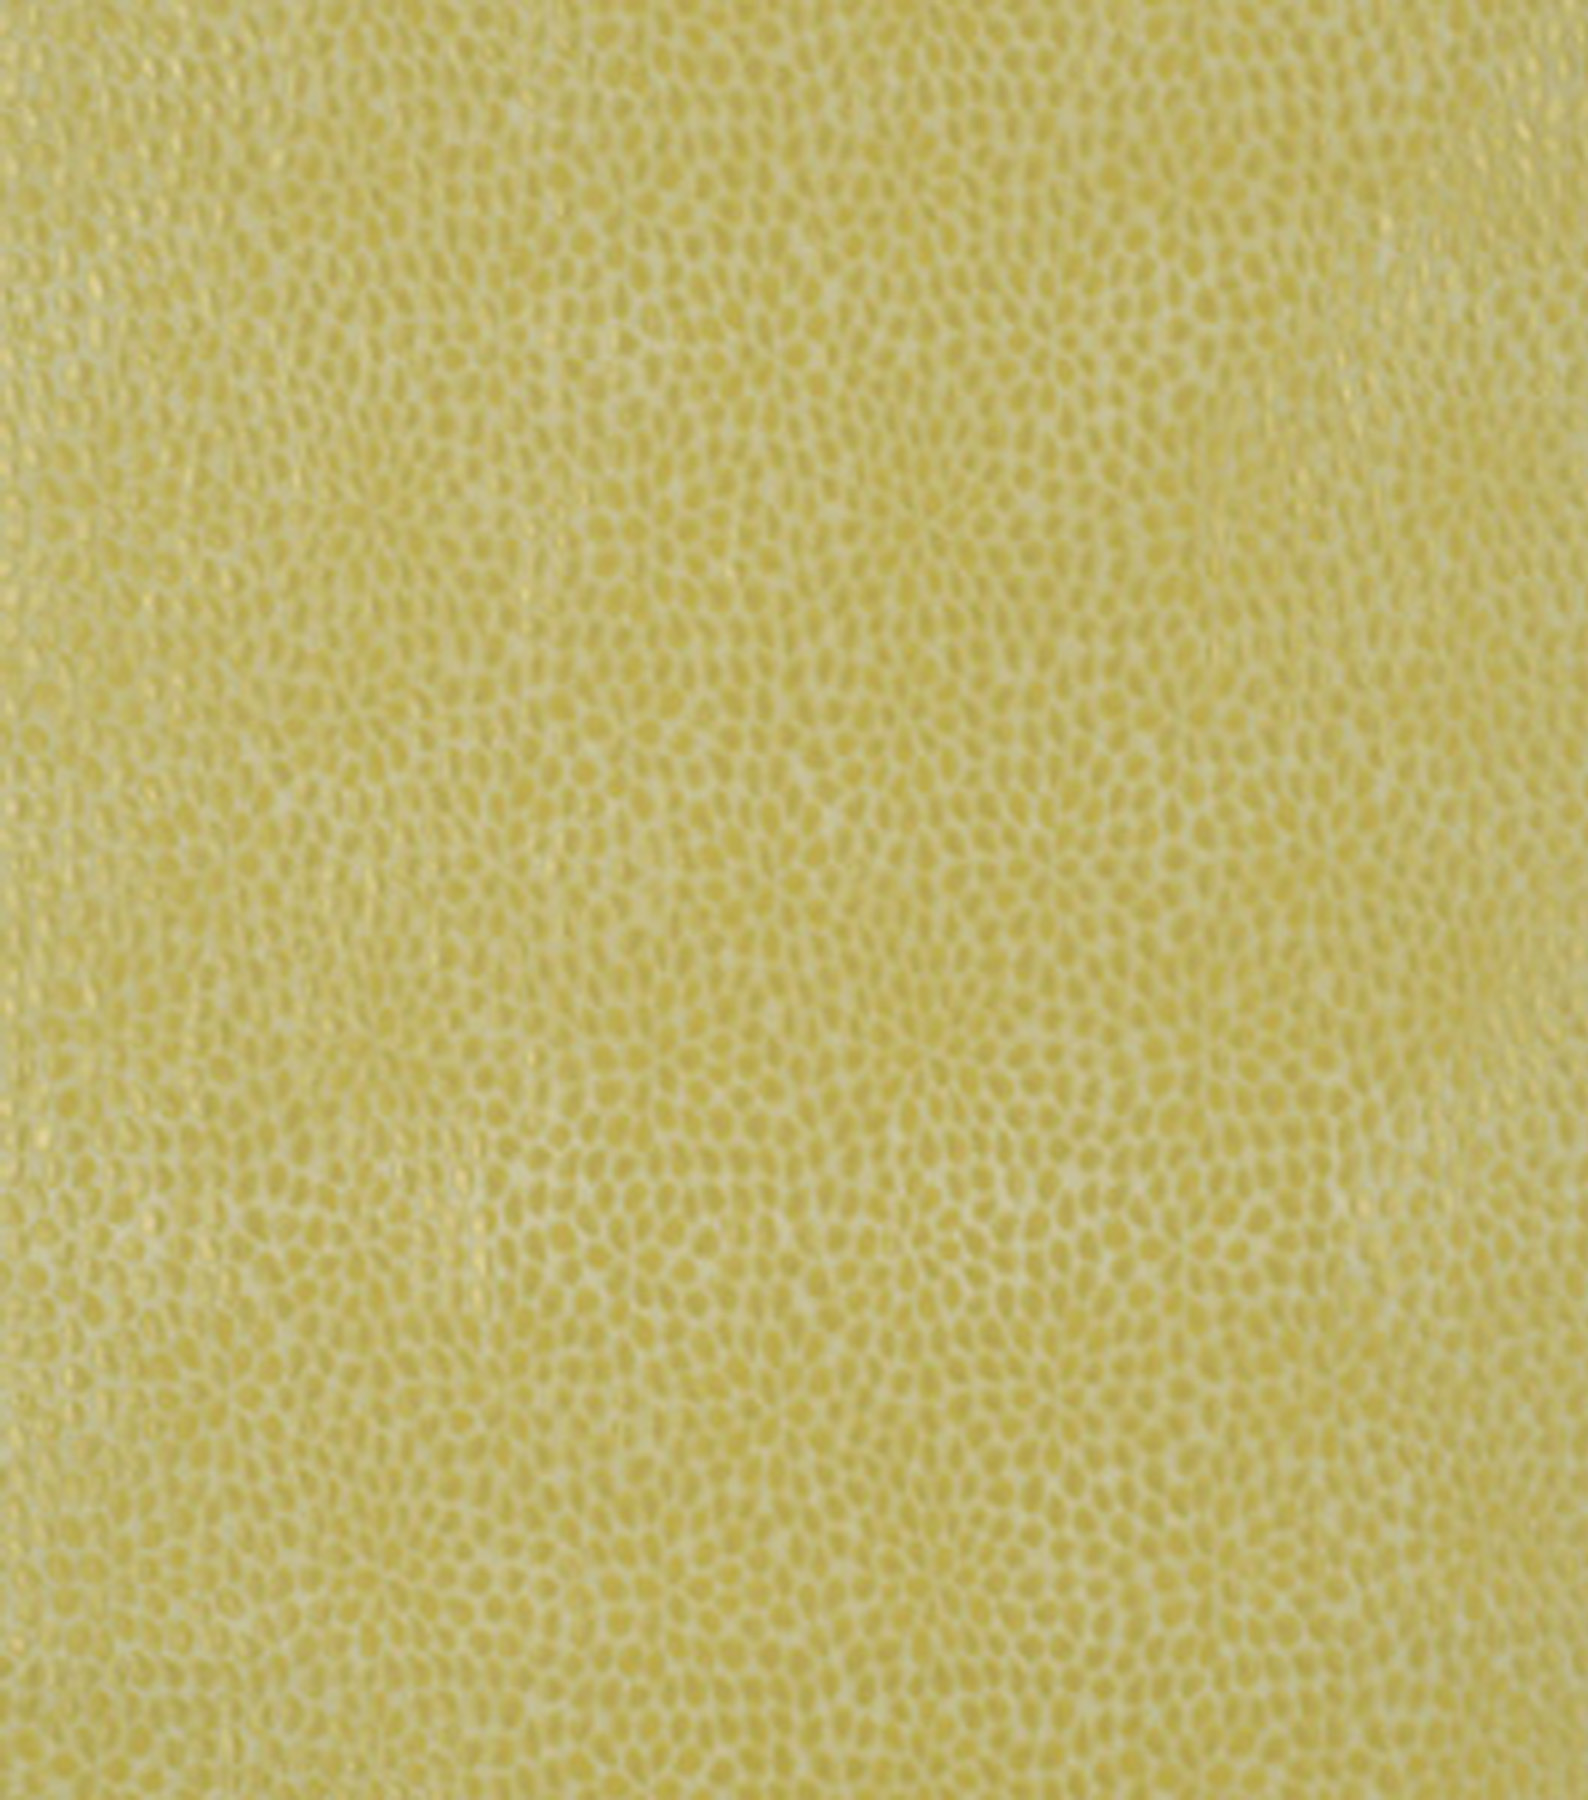 Home Decor 8\u0022x8\u0022 Fabric Swatch-Robert Allen Mosaic Petal Maize